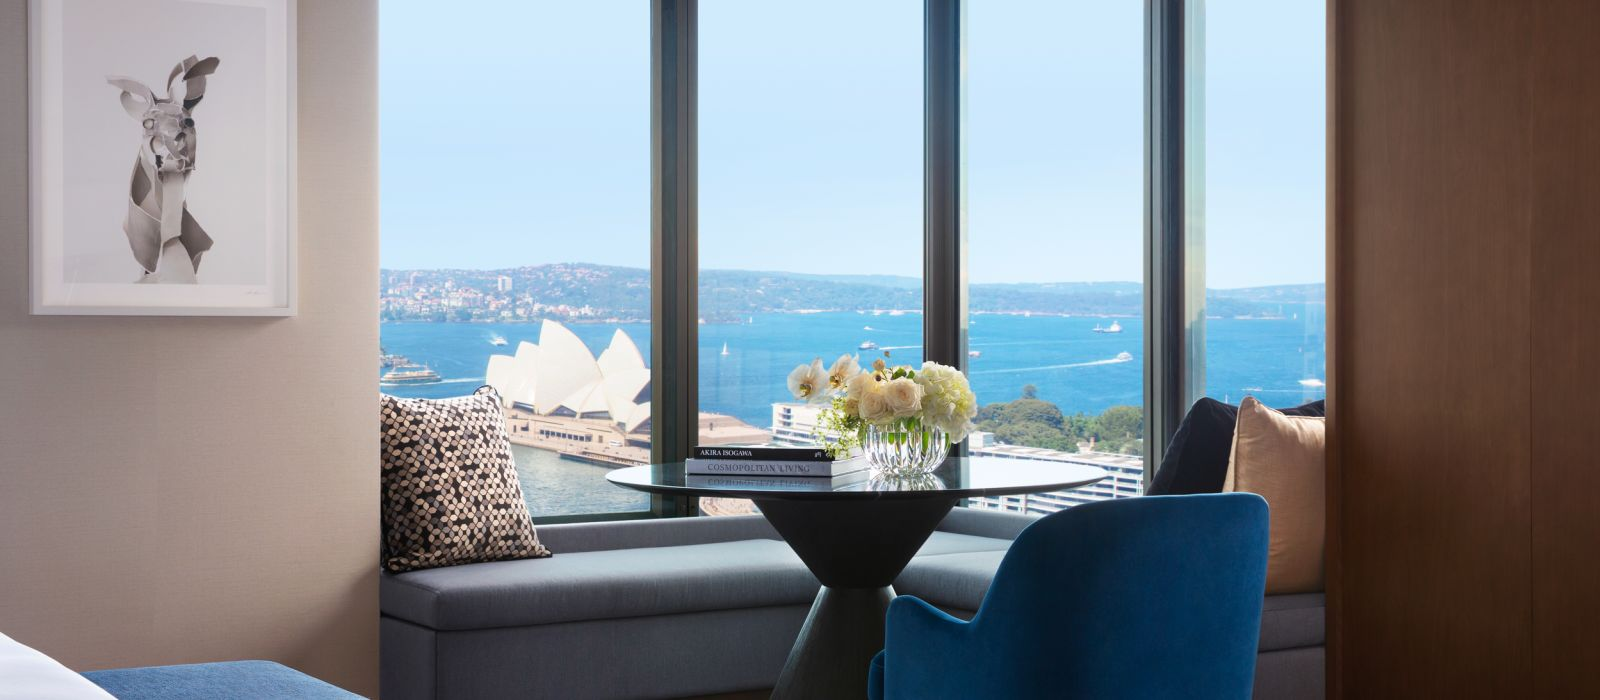 Hotel Four Seasons  Sydney Australien